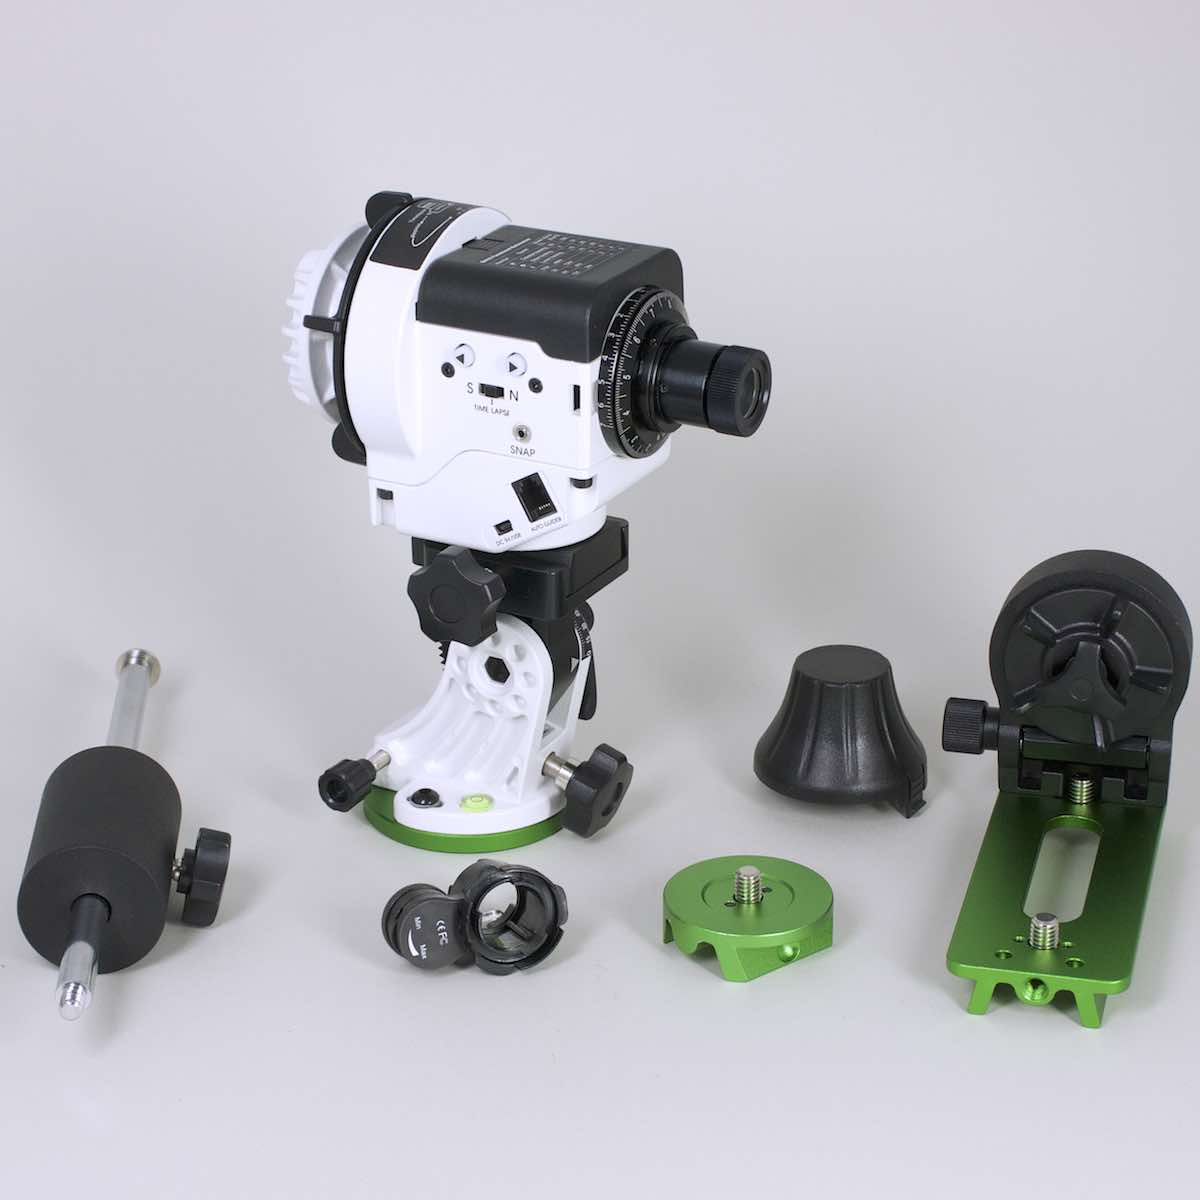 Skywatcher Star Adventurer Astro Foto Komplettset